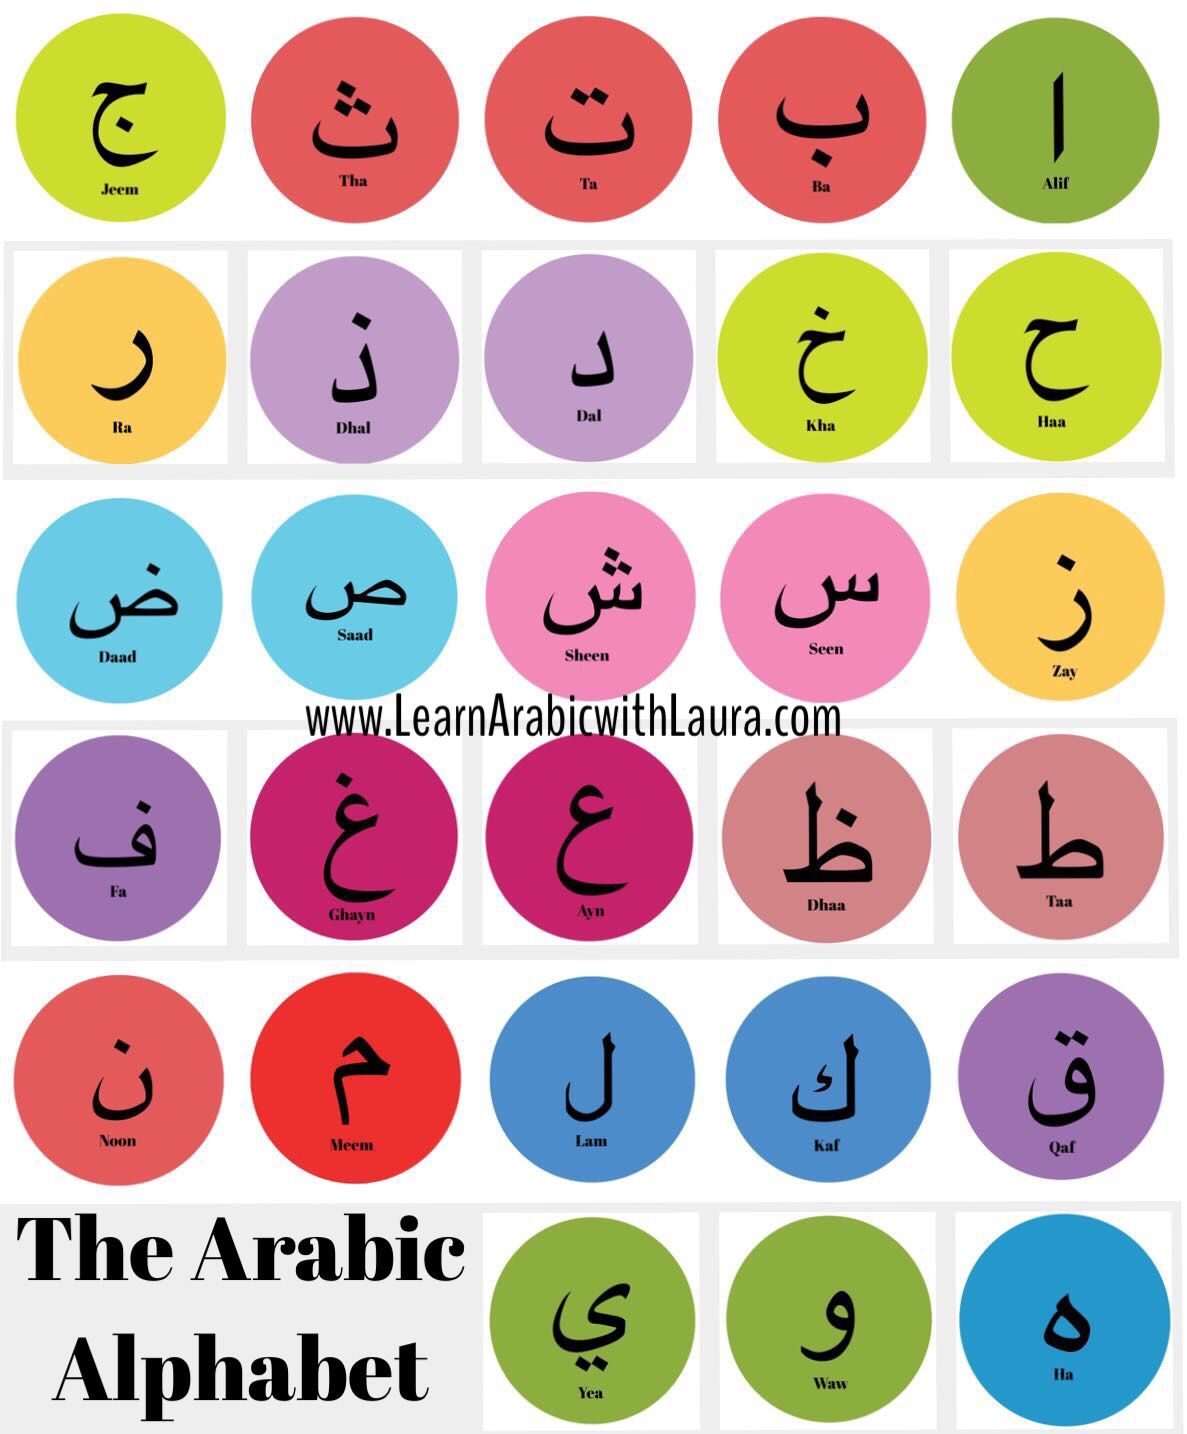 Pin By Laura Al Albani On Learn Arabic With Laura